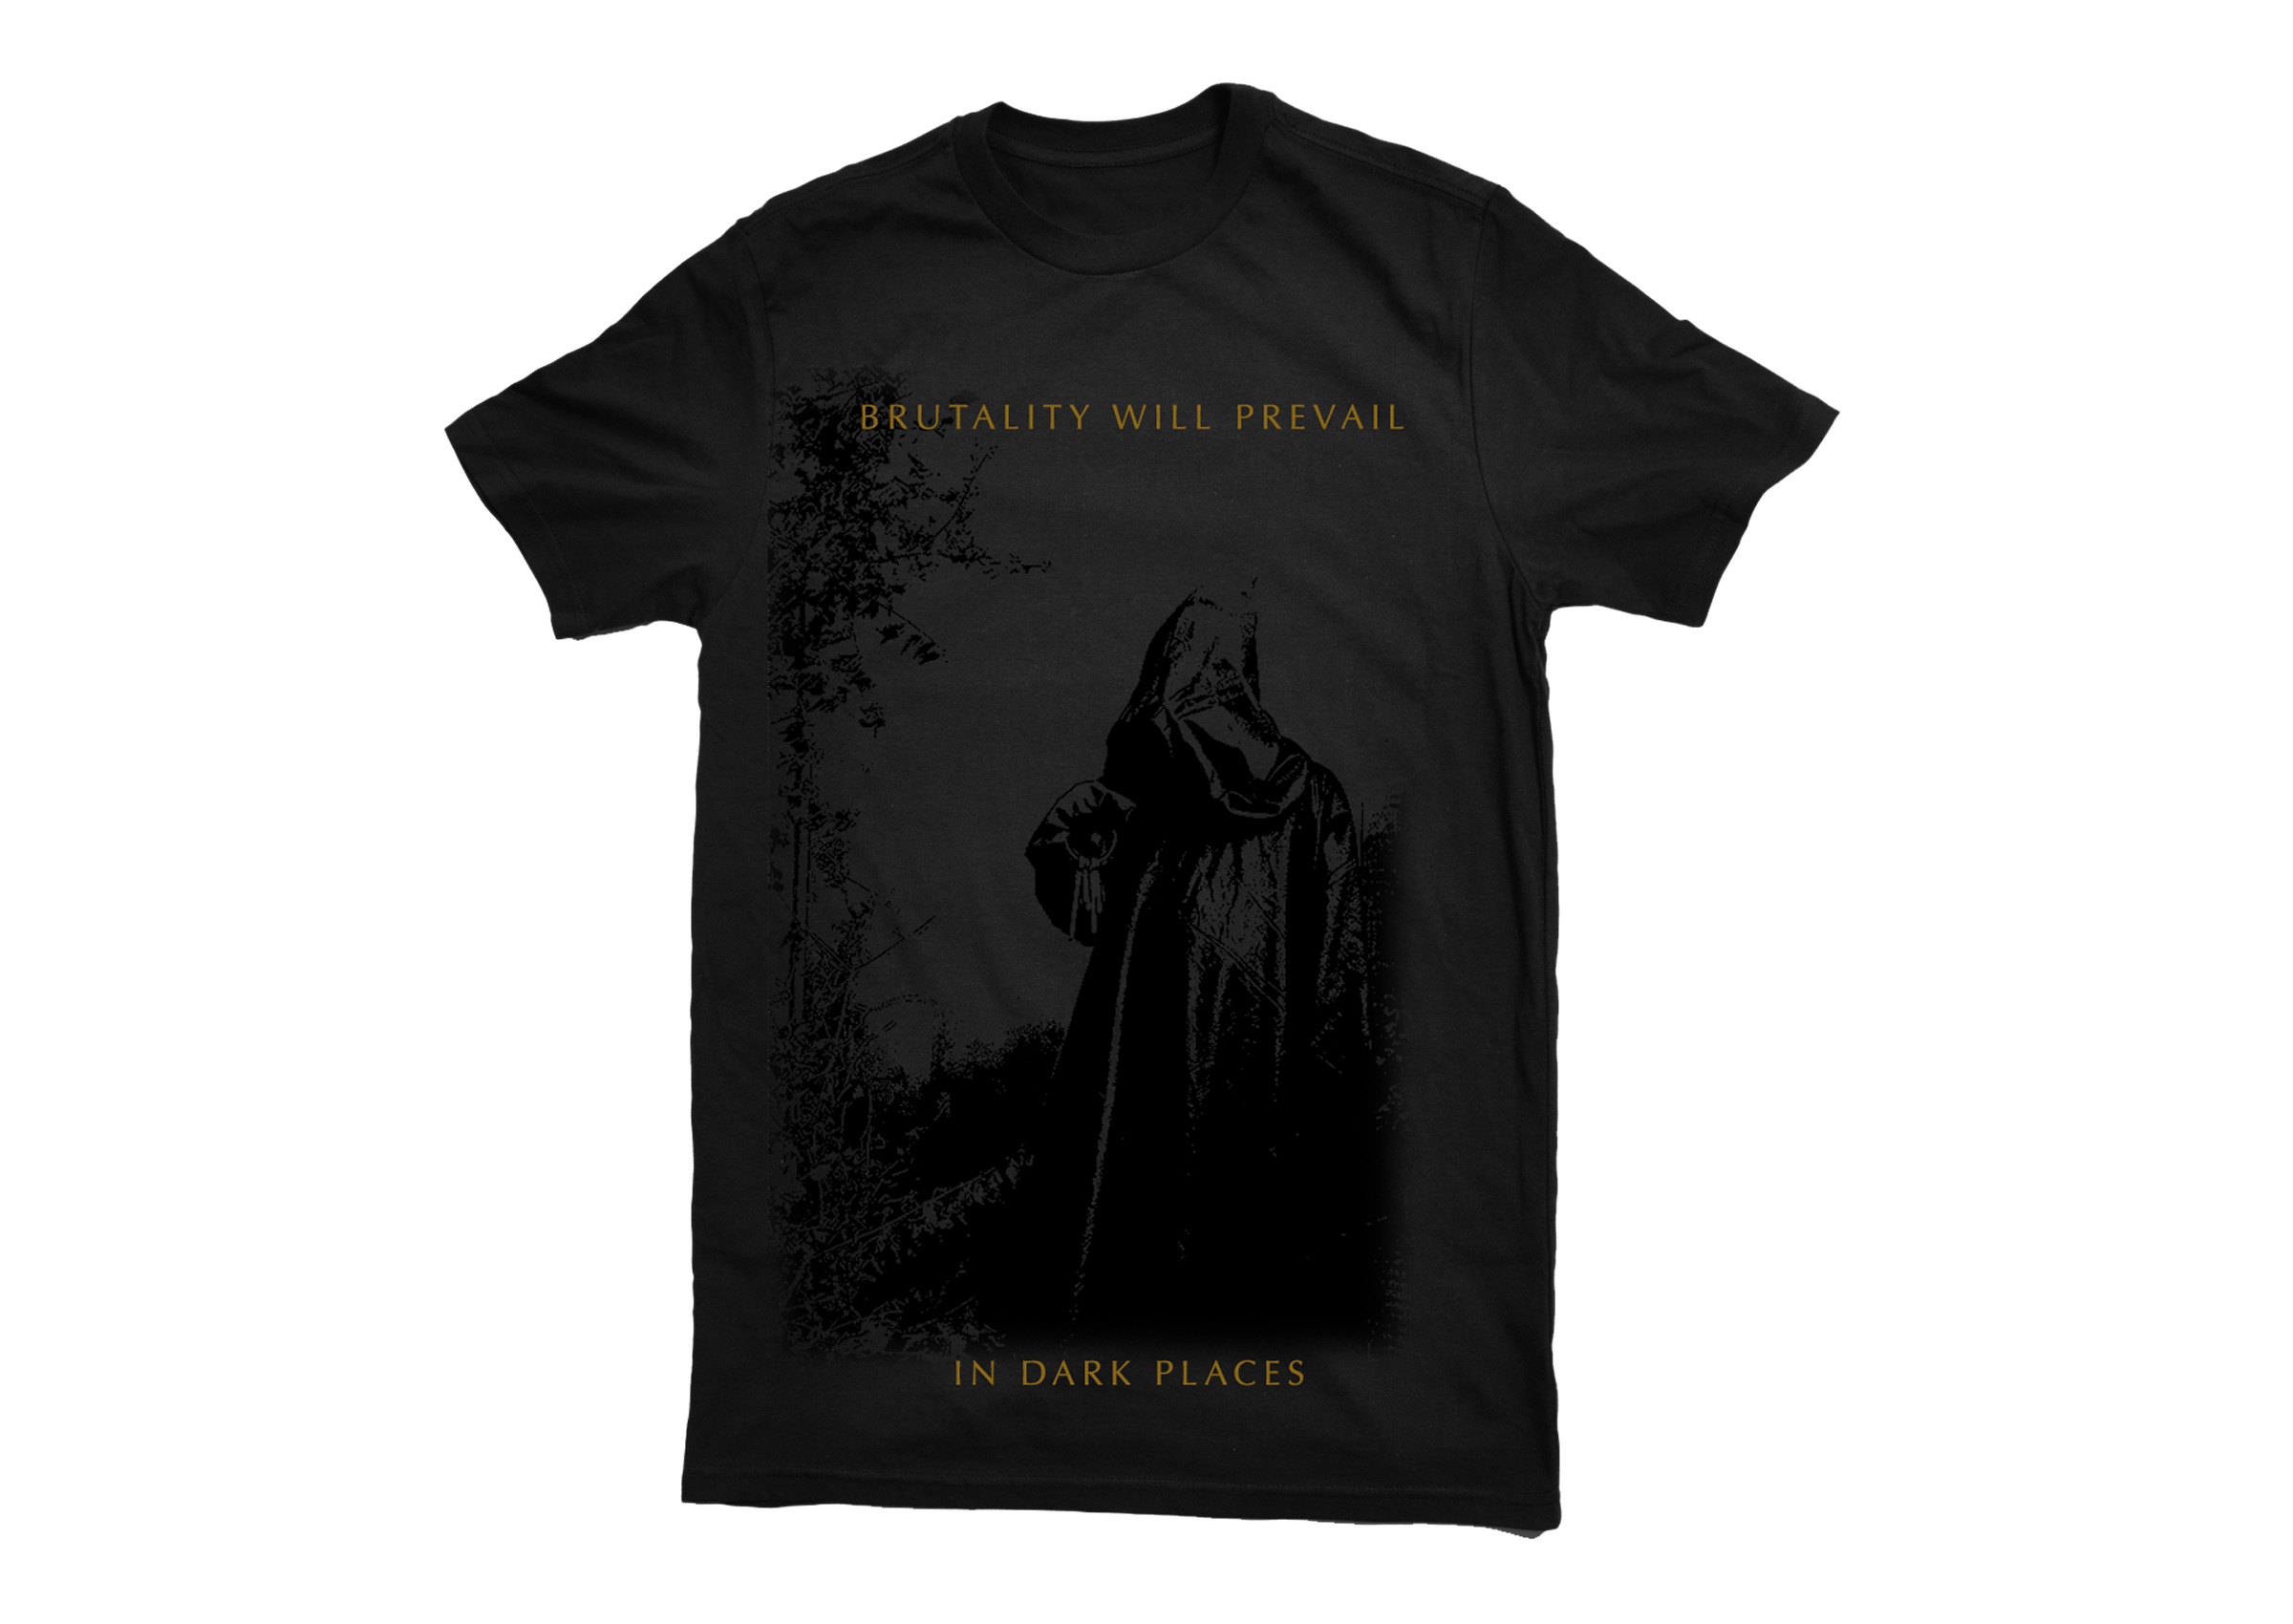 Brutality Will Prevail - In Dark Places shirt